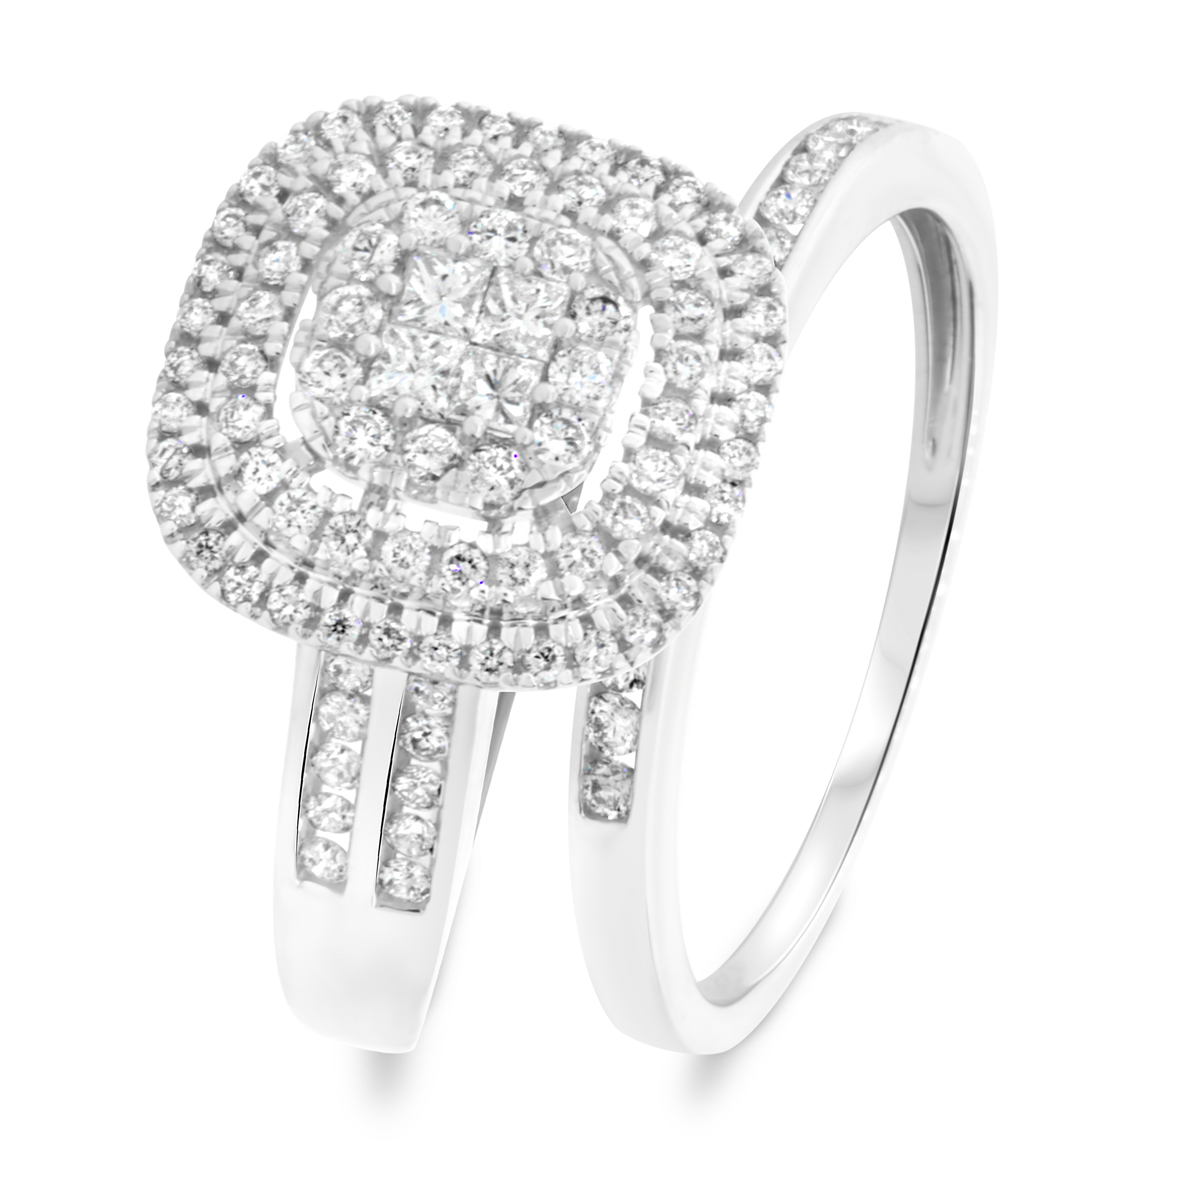 1 1 CT. T.W. Princess Round Cut Diamond Ladies Bridal Wedding Ring Set 14K White Gold BR812W14K